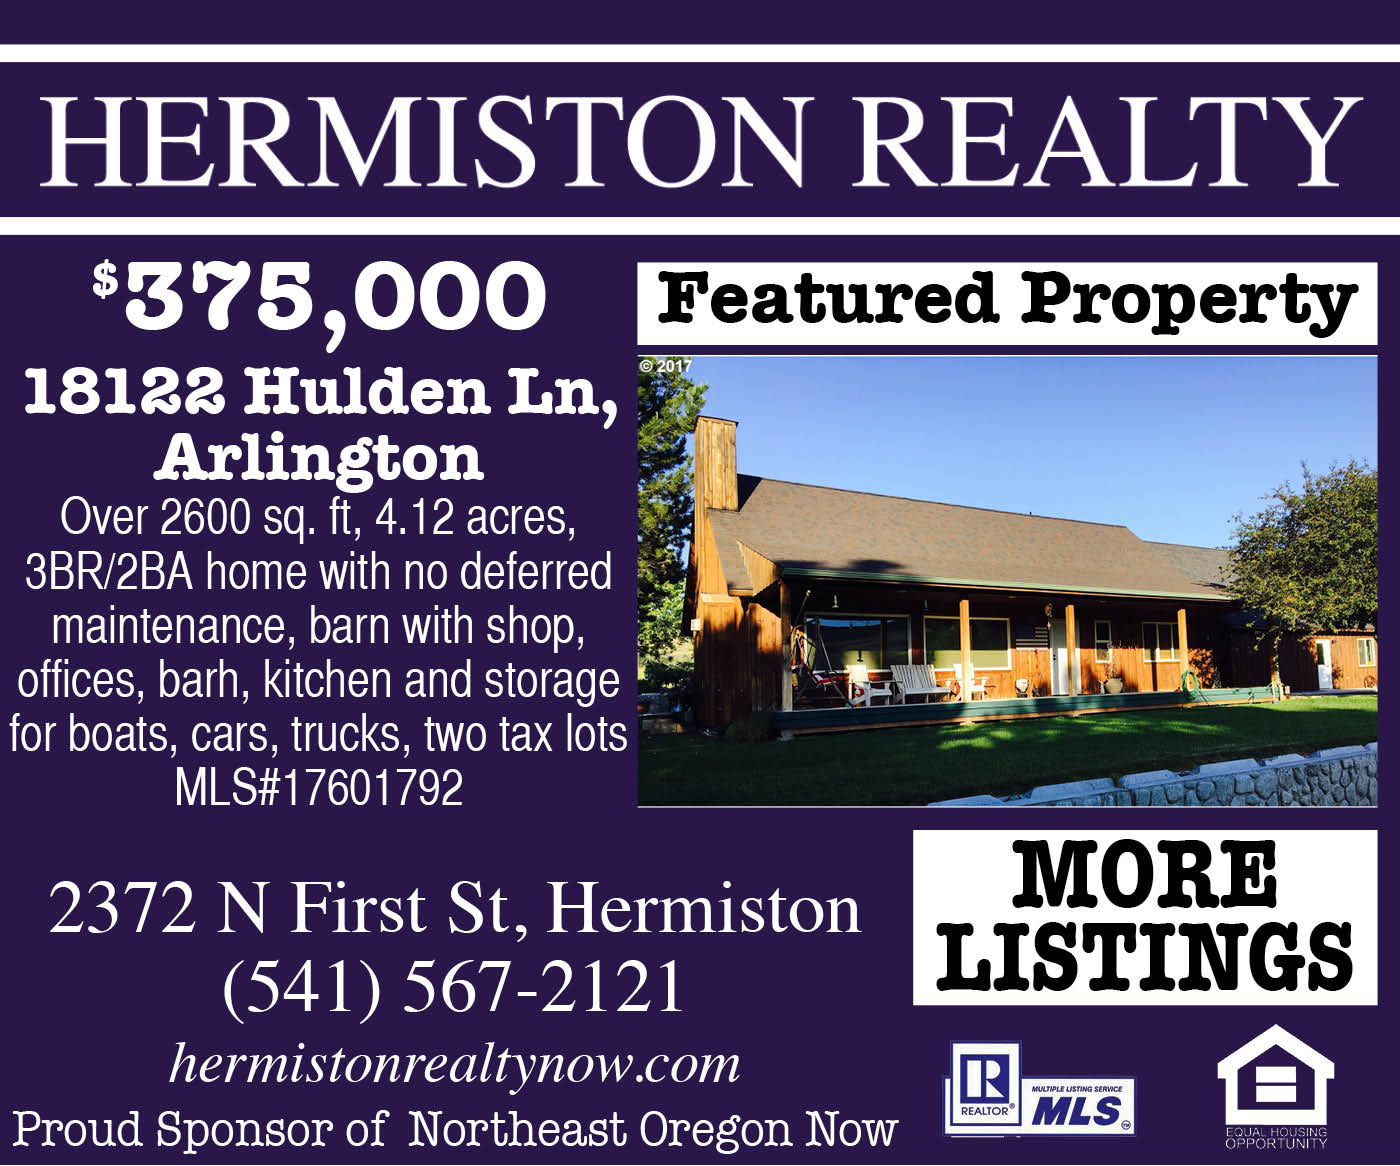 Hermiston Realty Side Ad No. 1 5-22-17 (123)